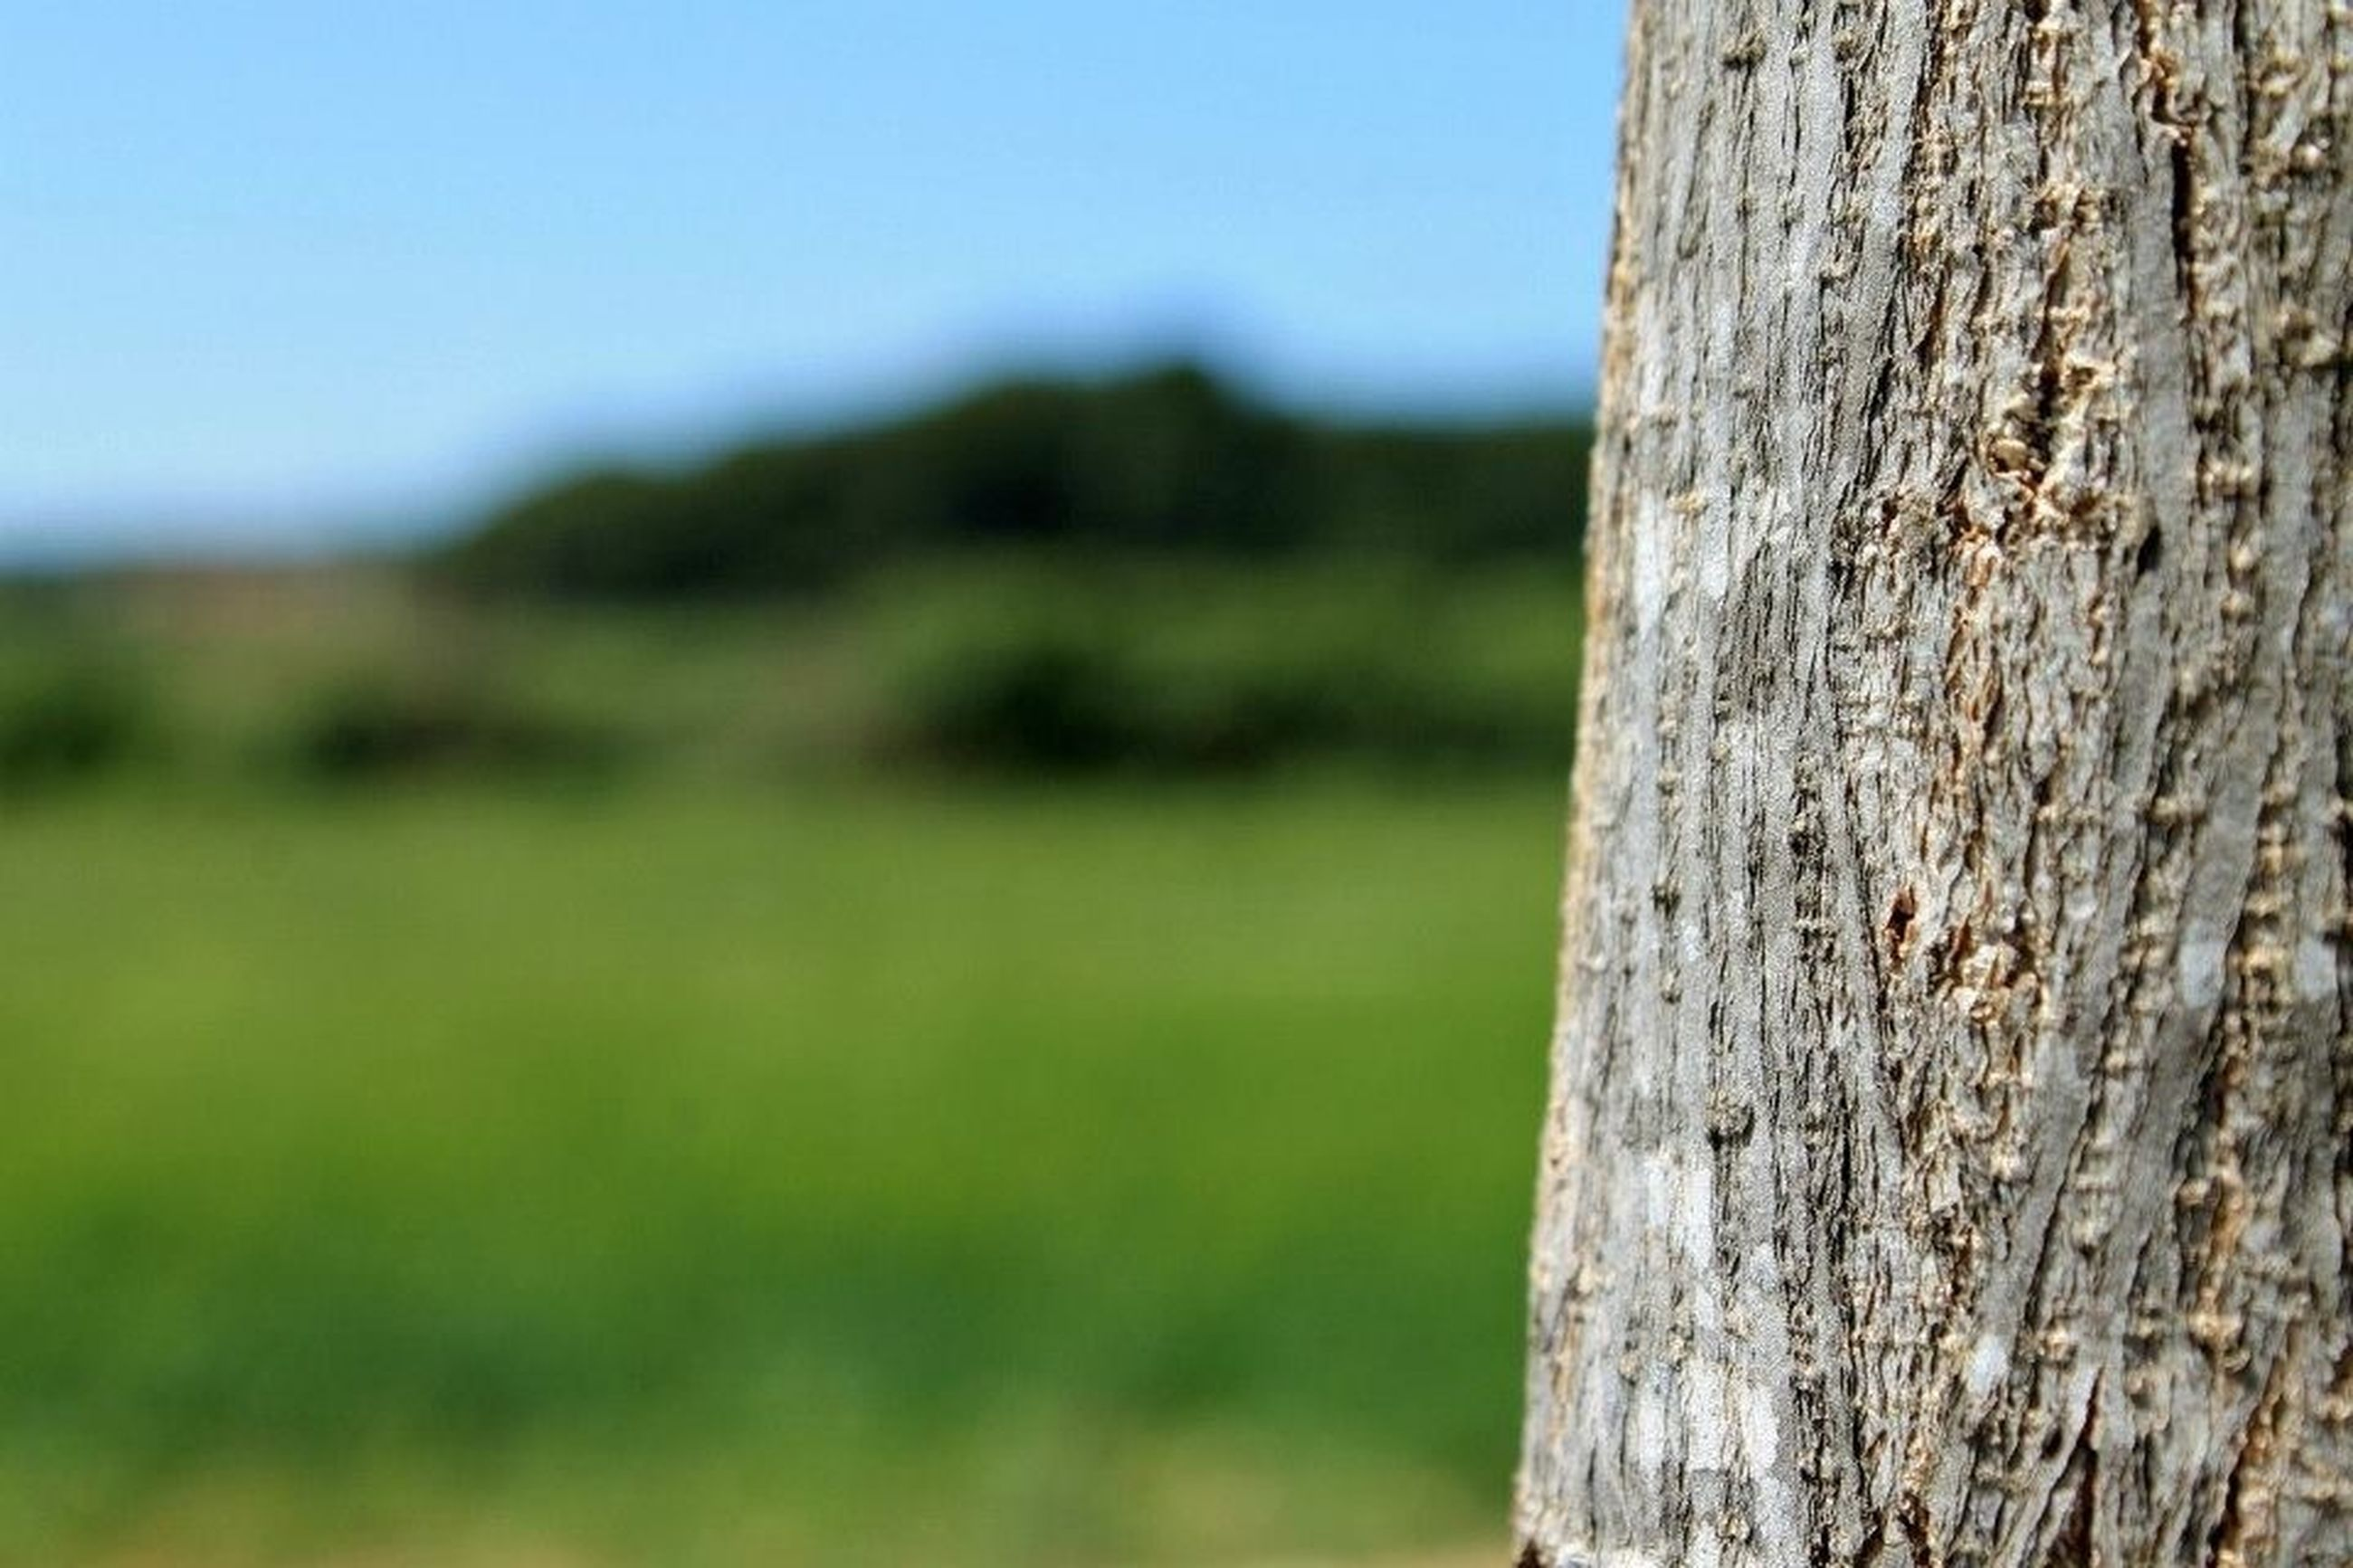 focus on foreground, close-up, textured, wood - material, tree trunk, selective focus, nature, tree, tranquility, landscape, field, day, sky, outdoors, growth, tranquil scene, no people, grass, wood, wooden post